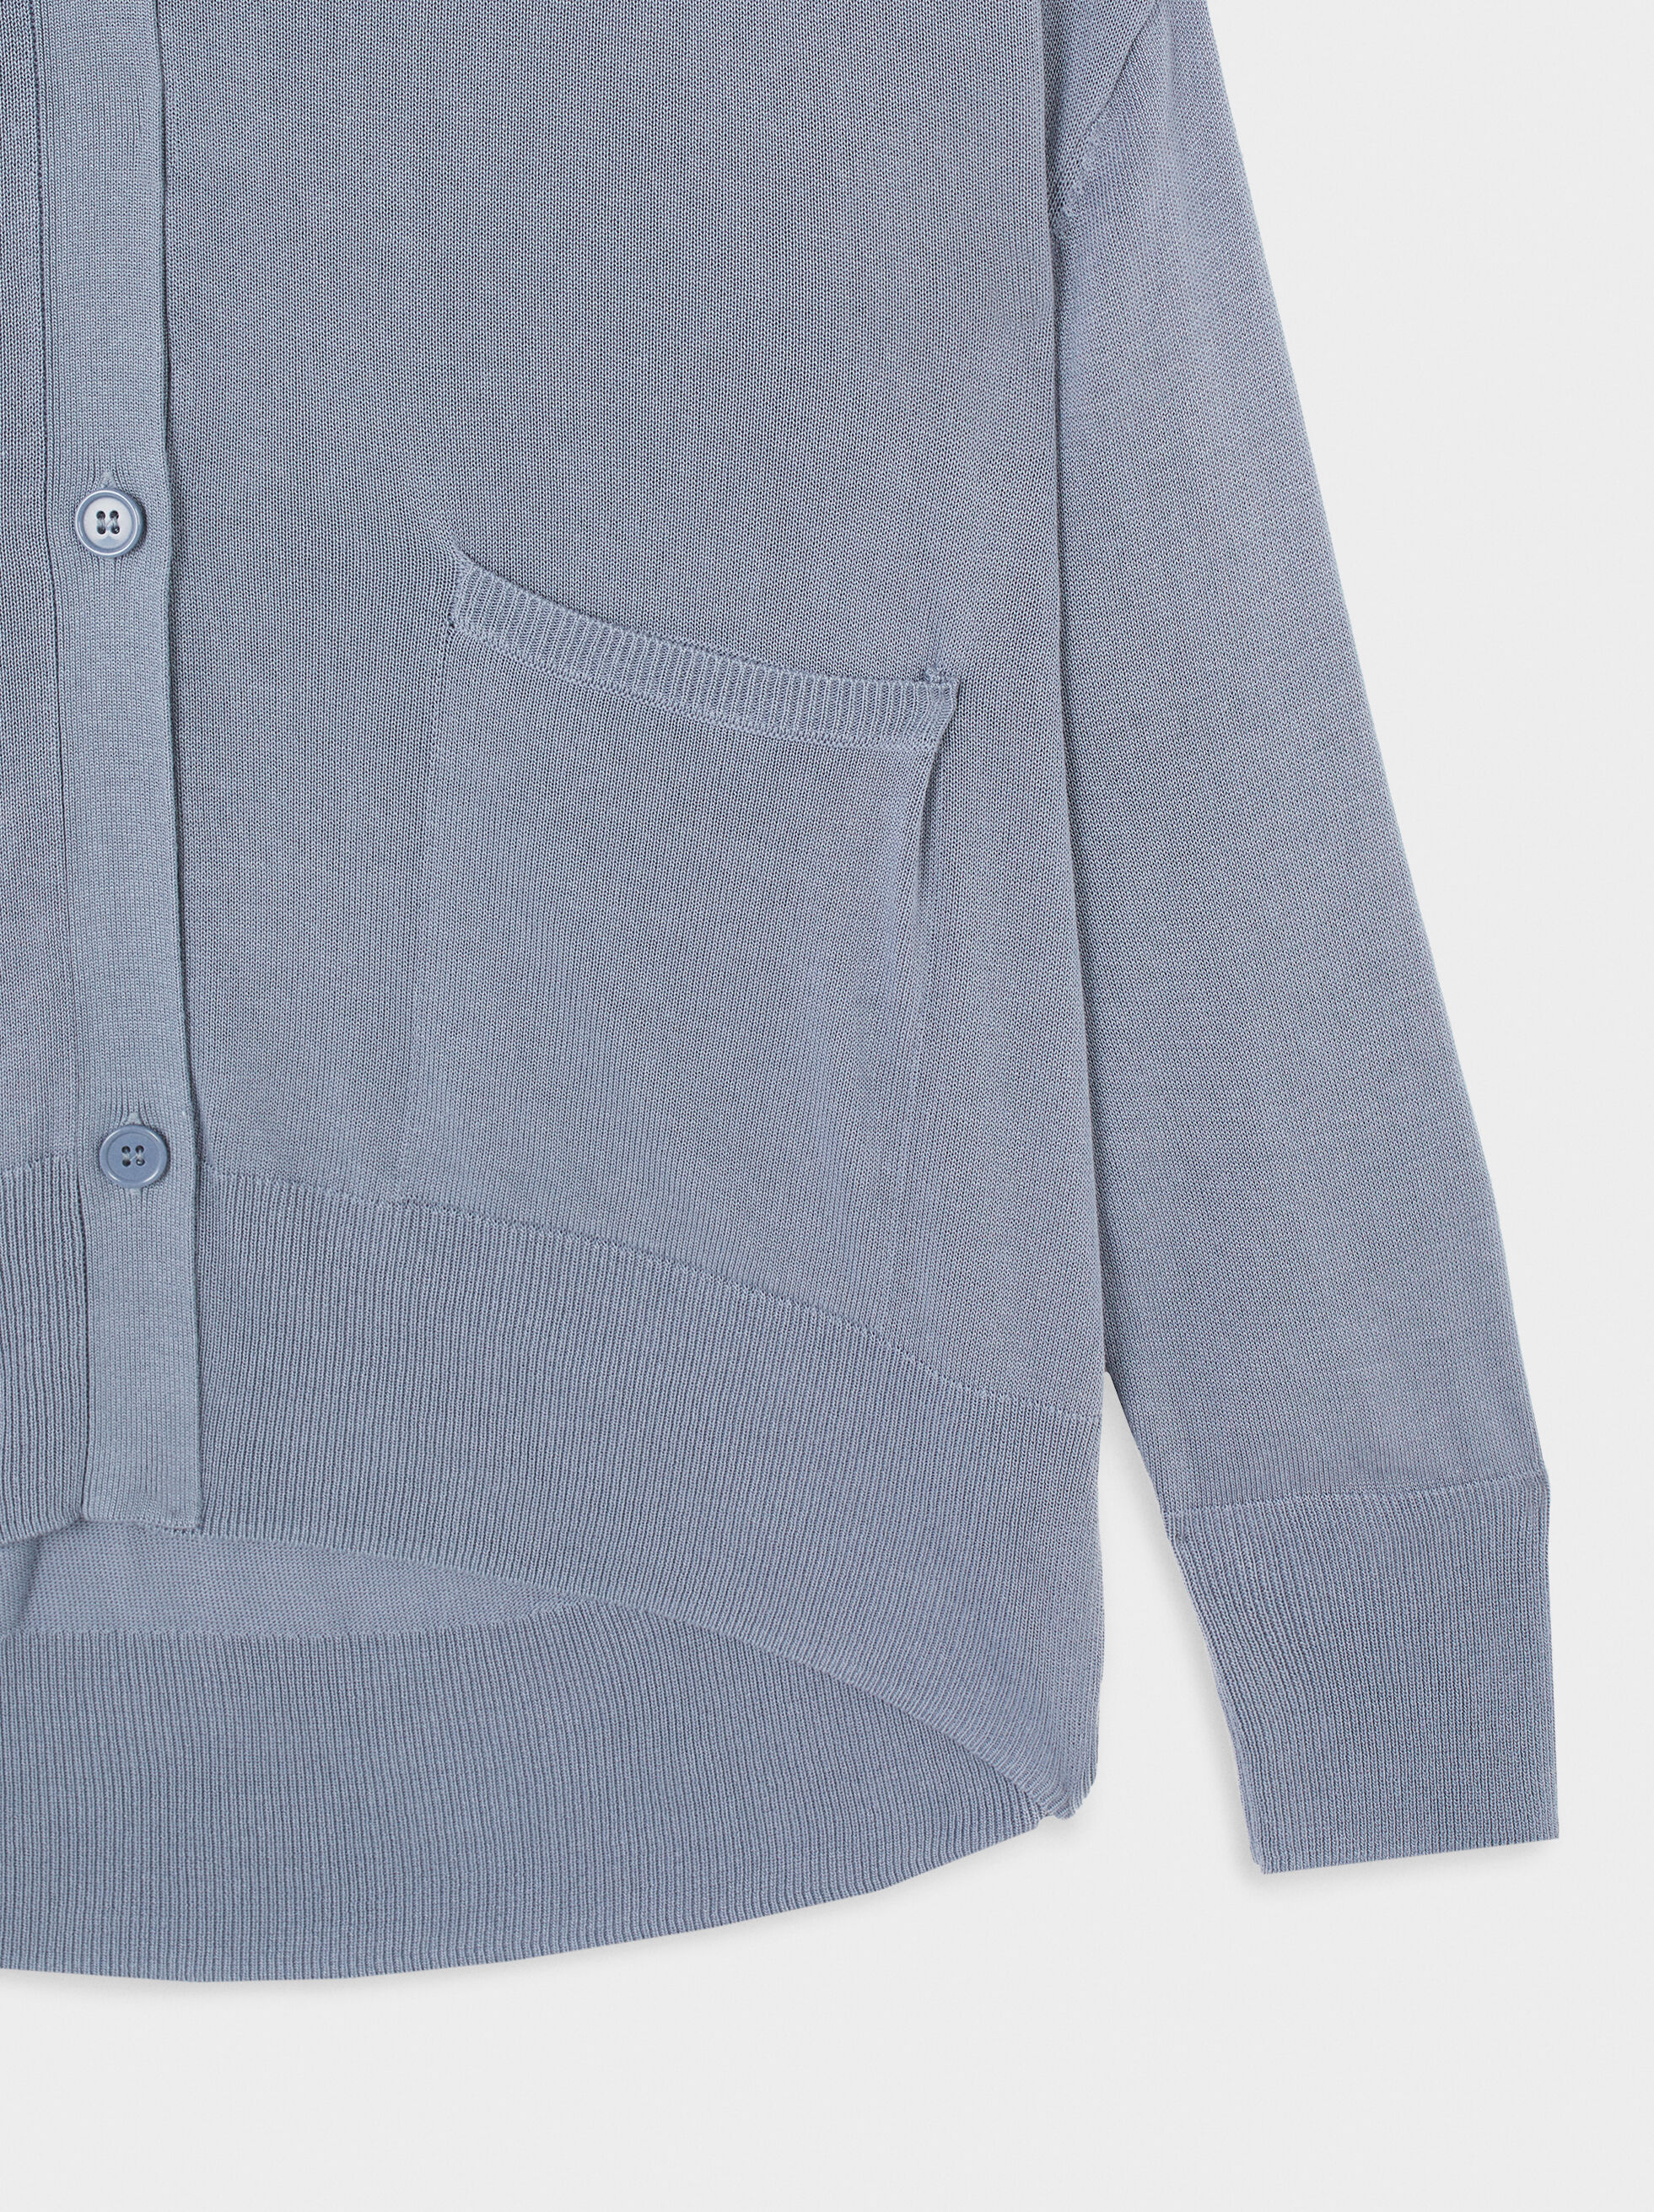 Knitted Cardigan With Pockets, Blue, hi-res